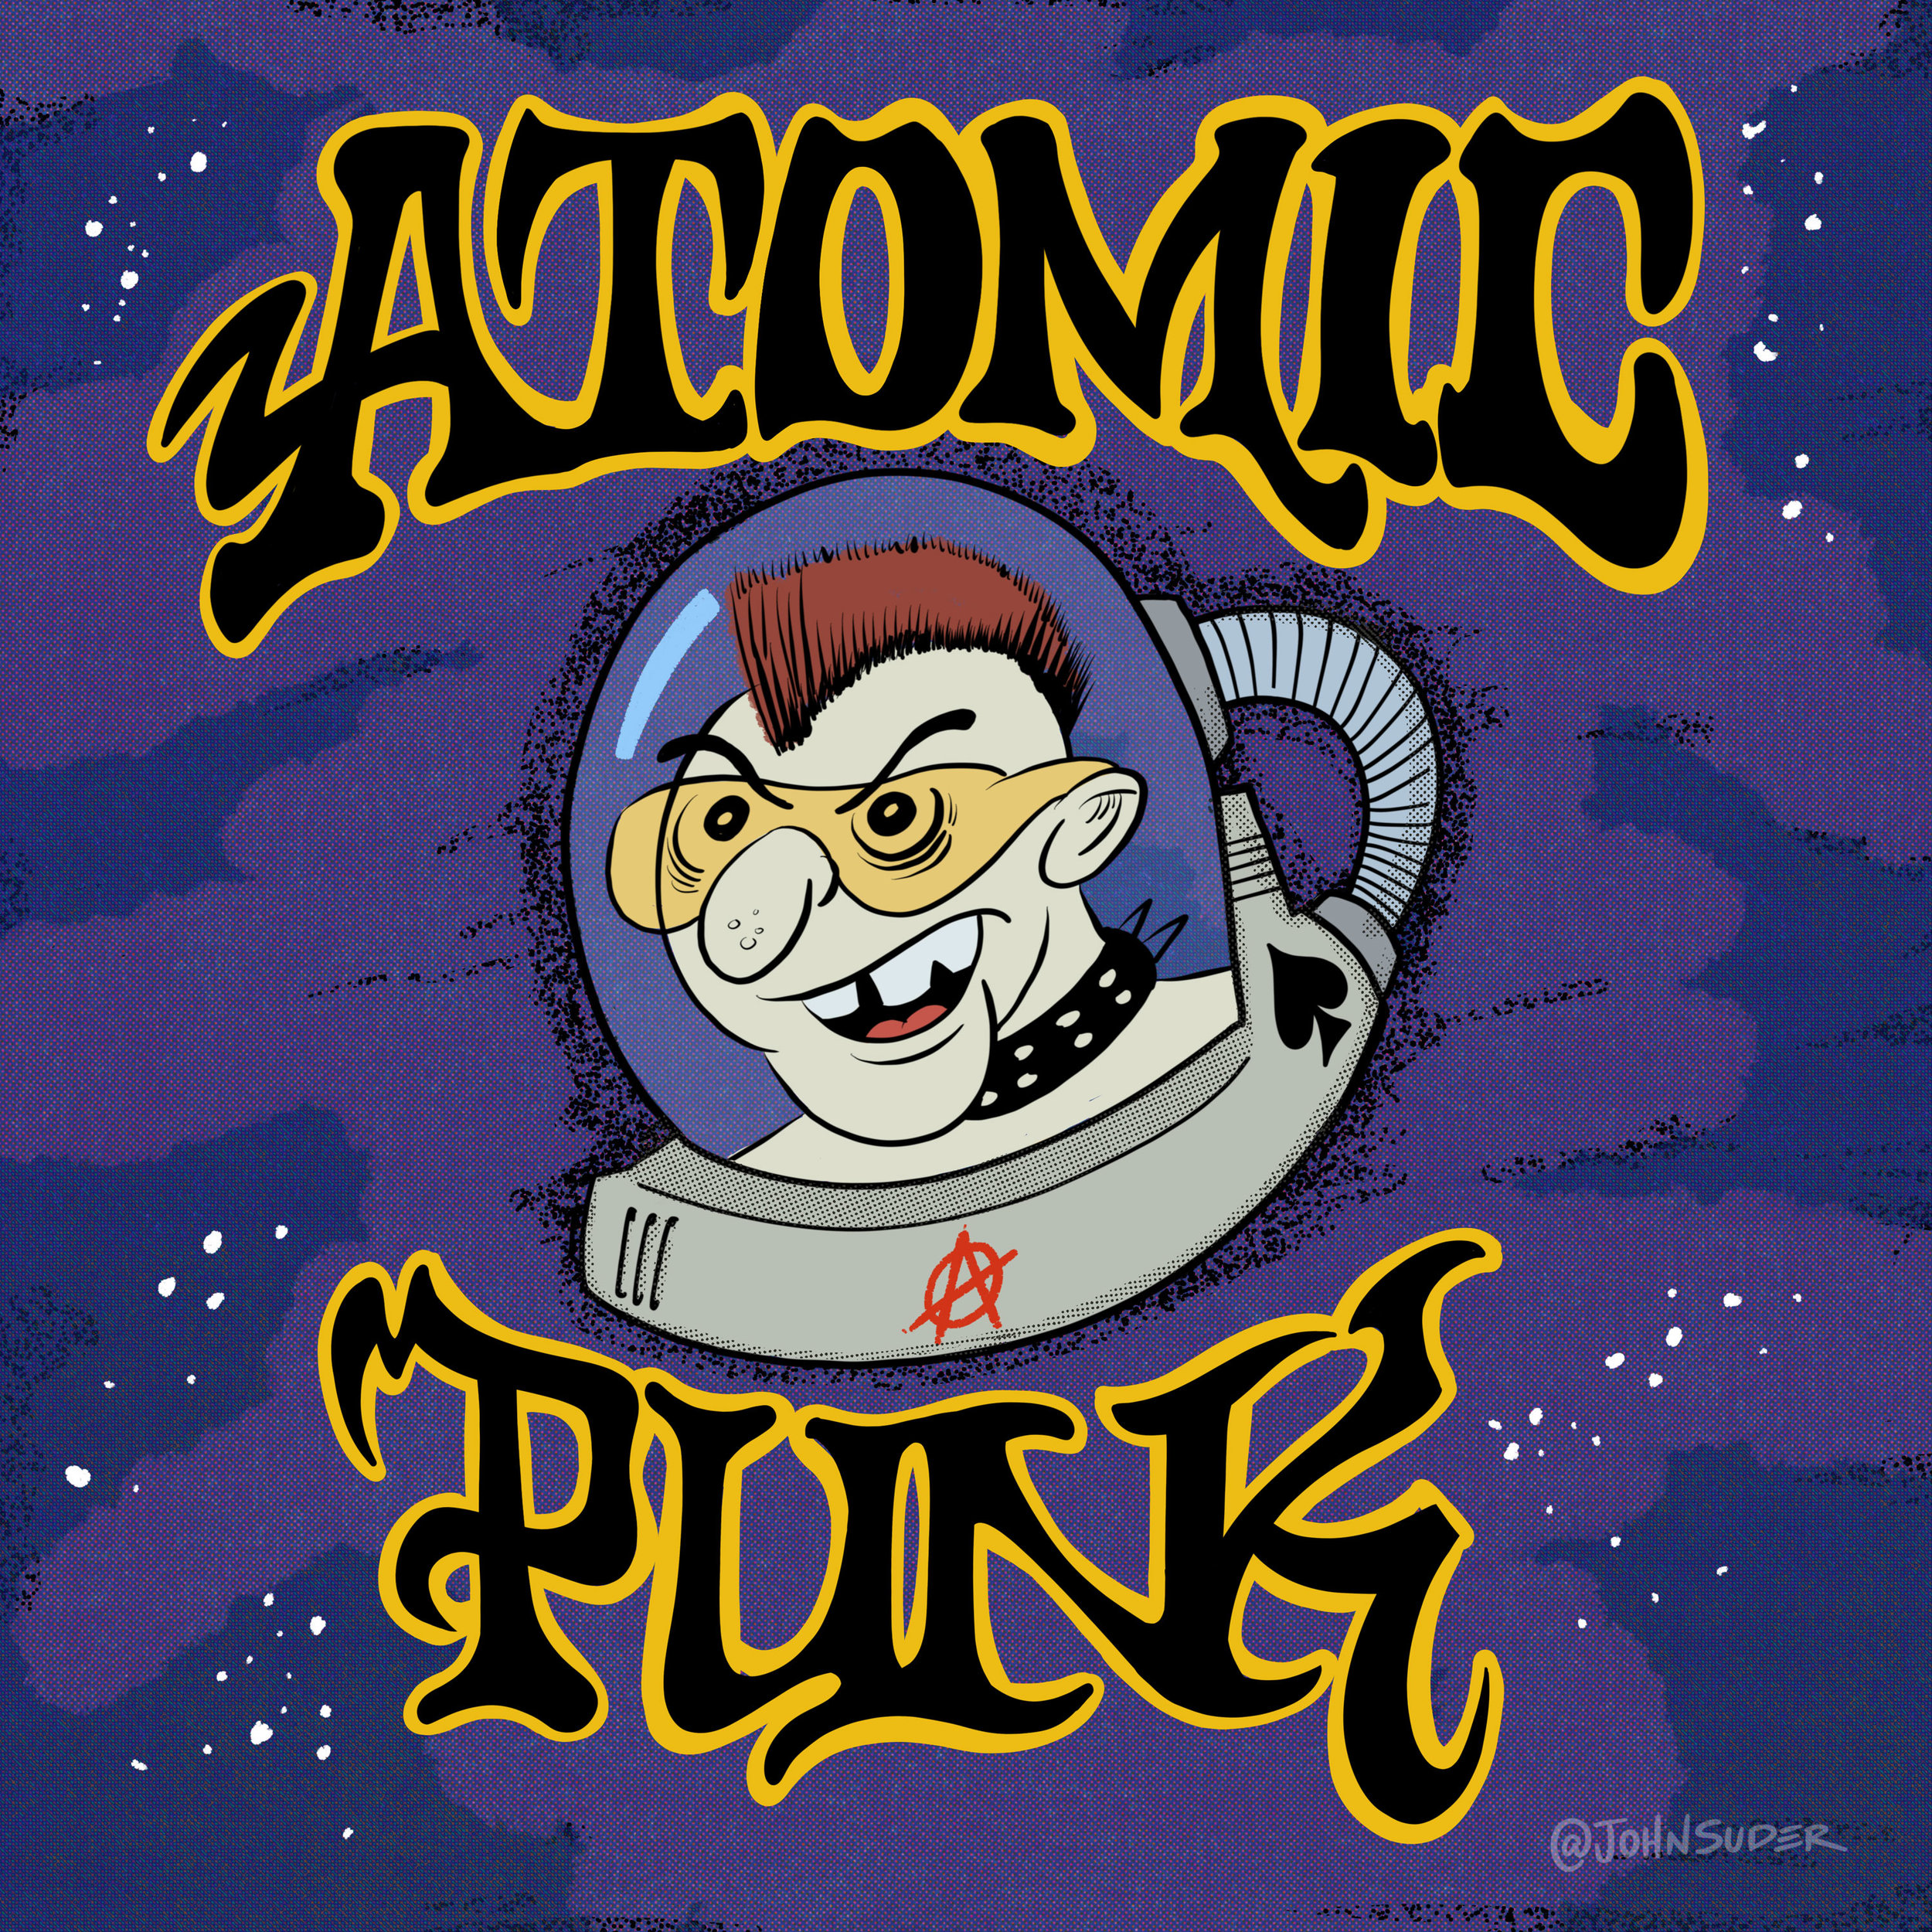 atomic-punk-by-john-suder.jpg.jpg